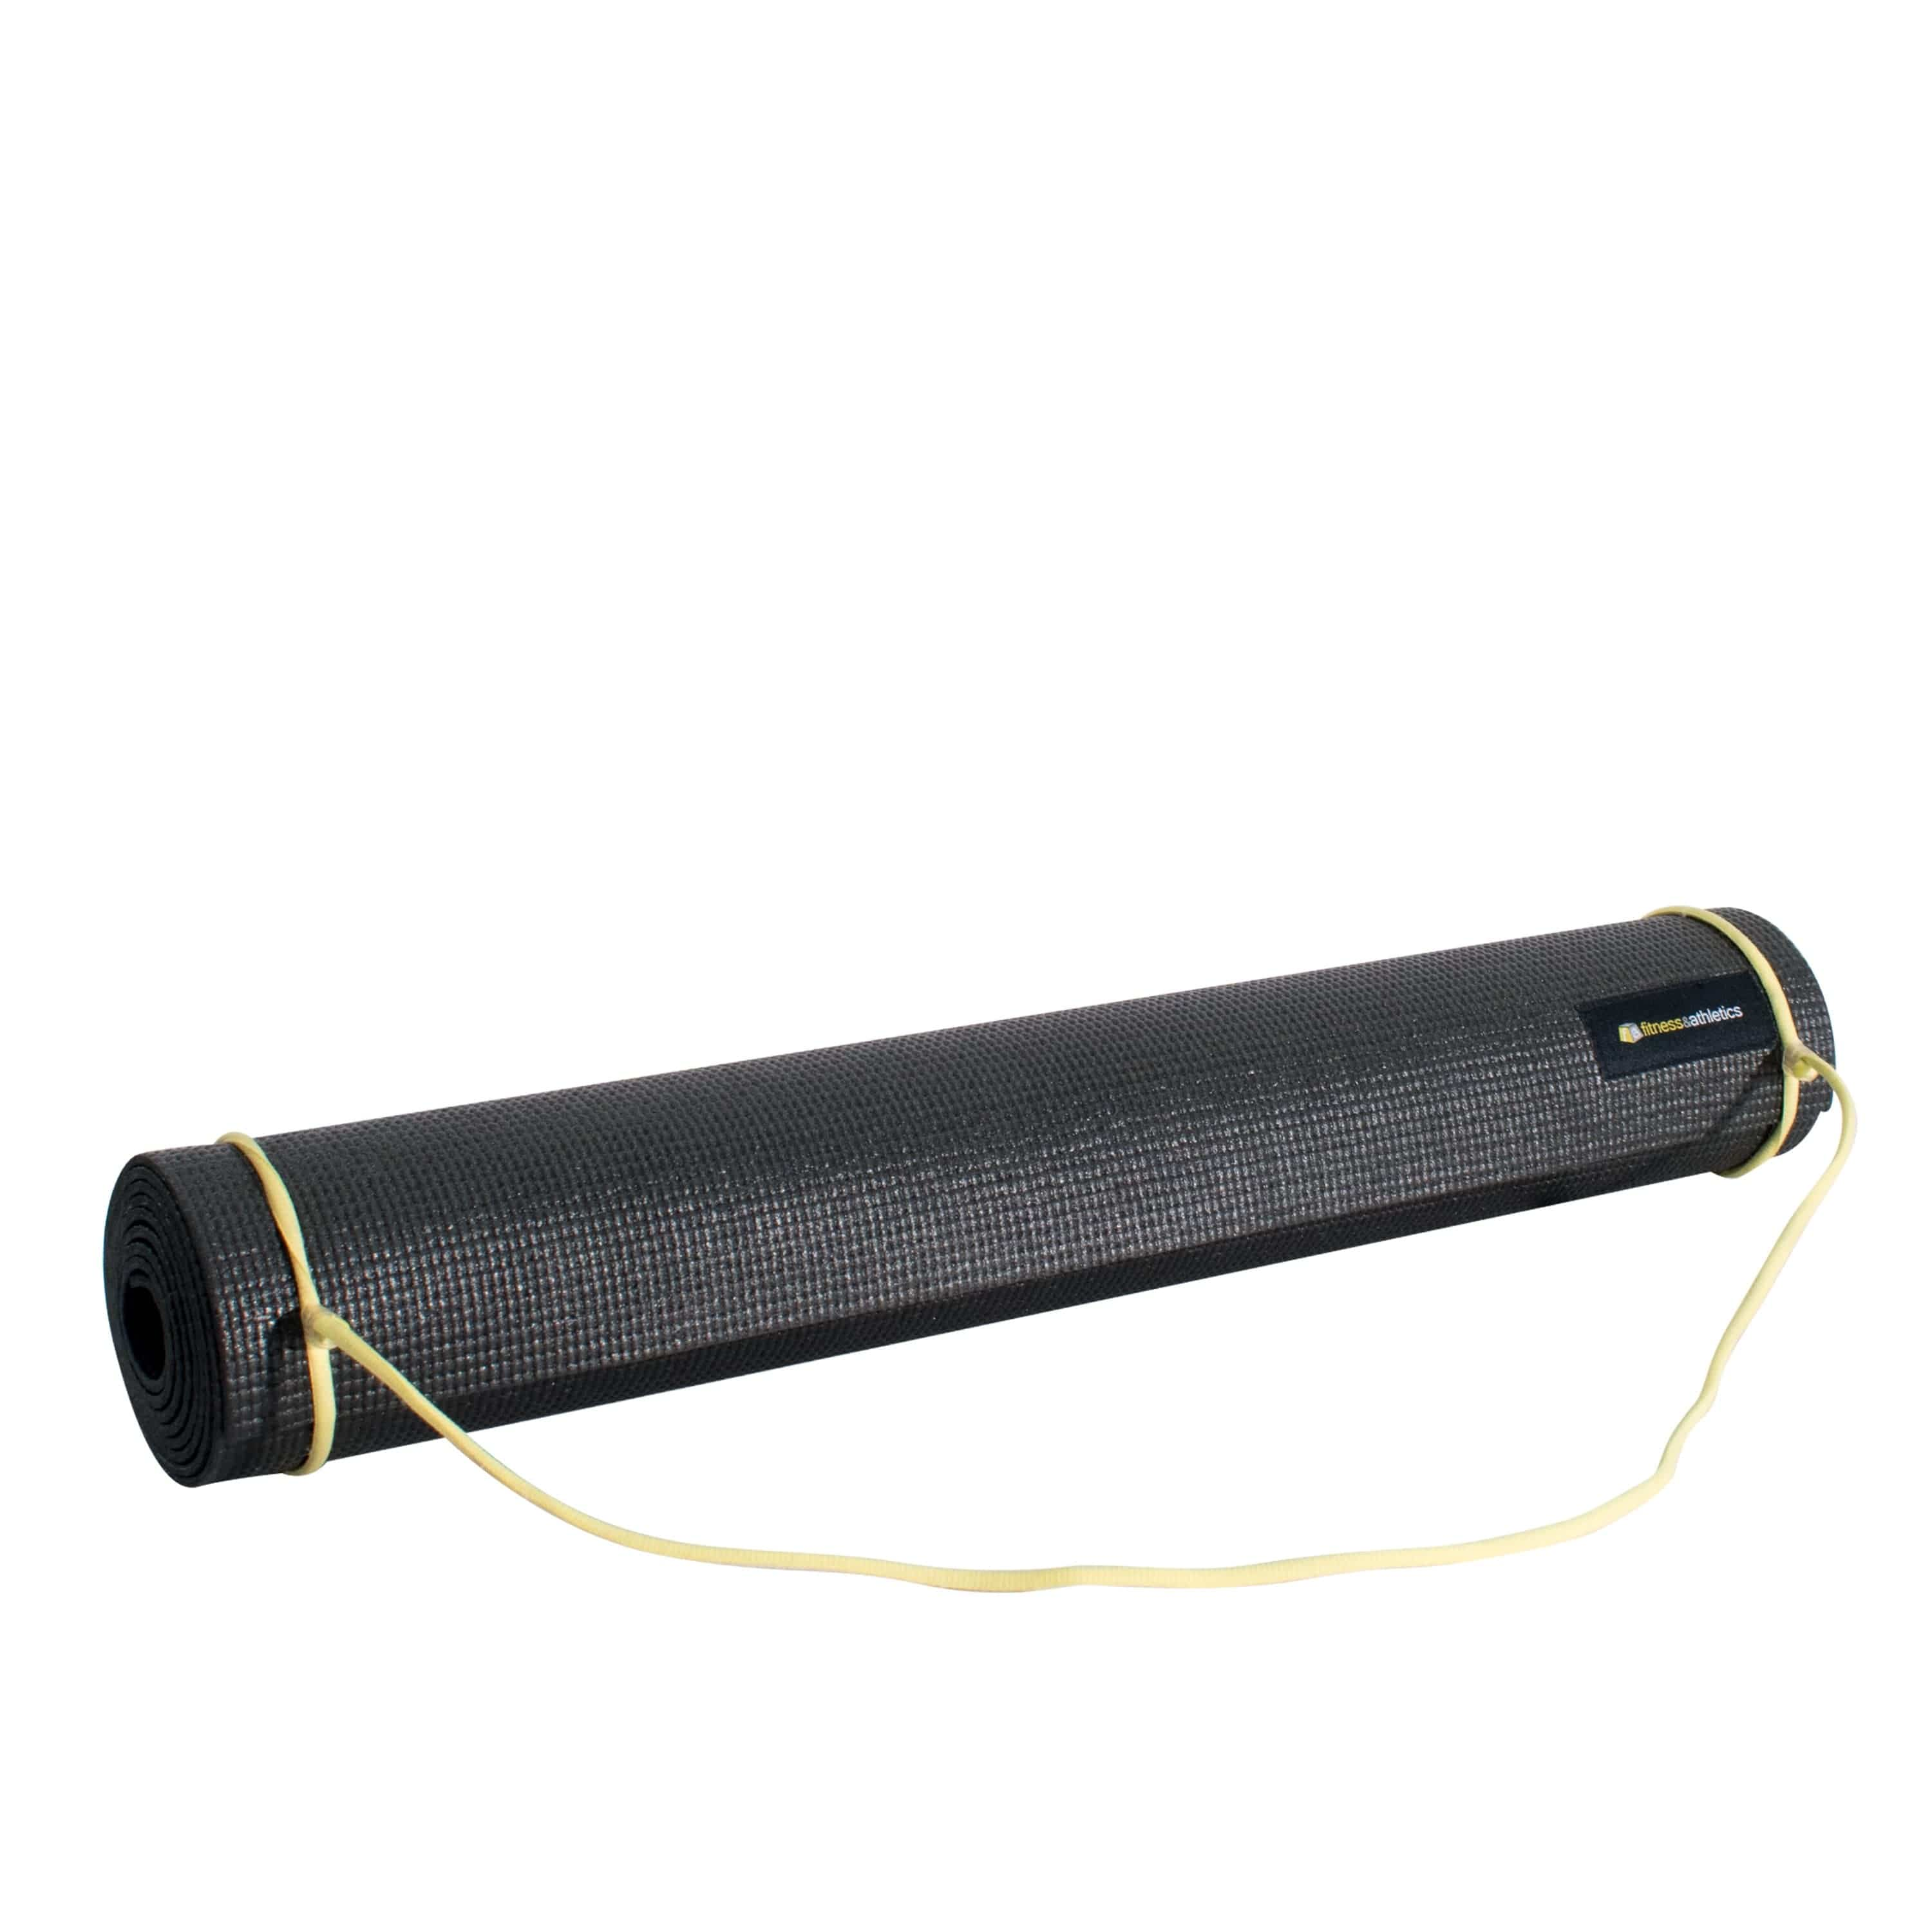 Fitness & Athletics Yoga Mat 3mm - Black